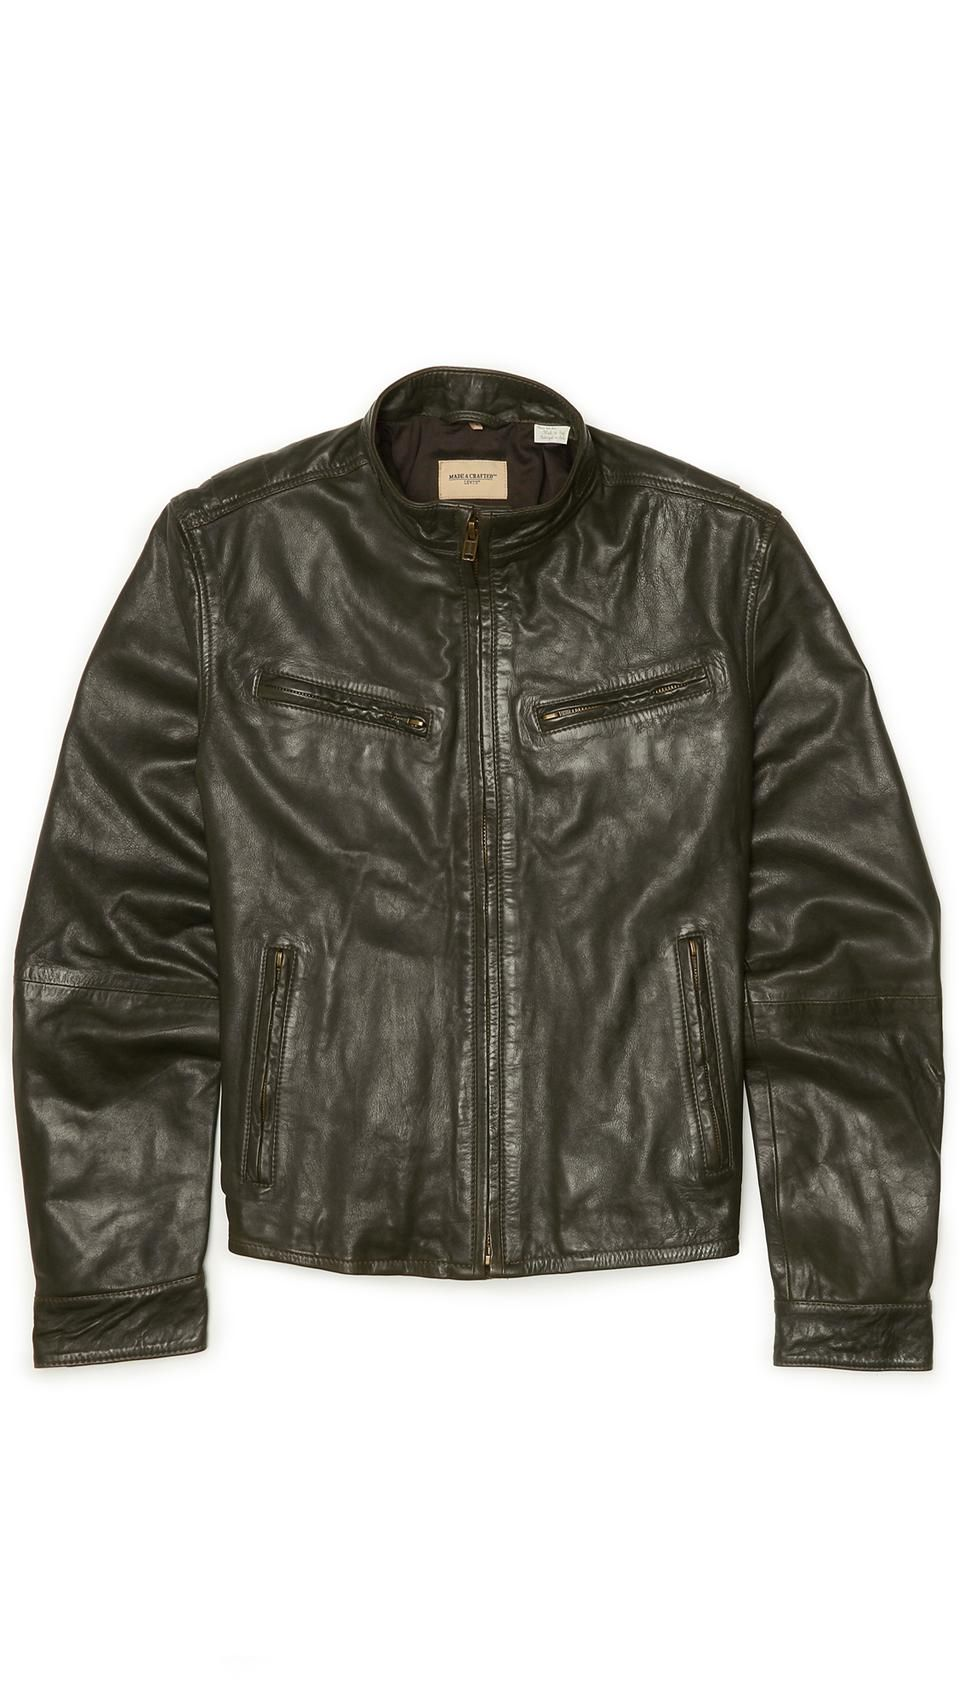 LEVI'S Made & Crafted Leather Biker Jacket mens leather